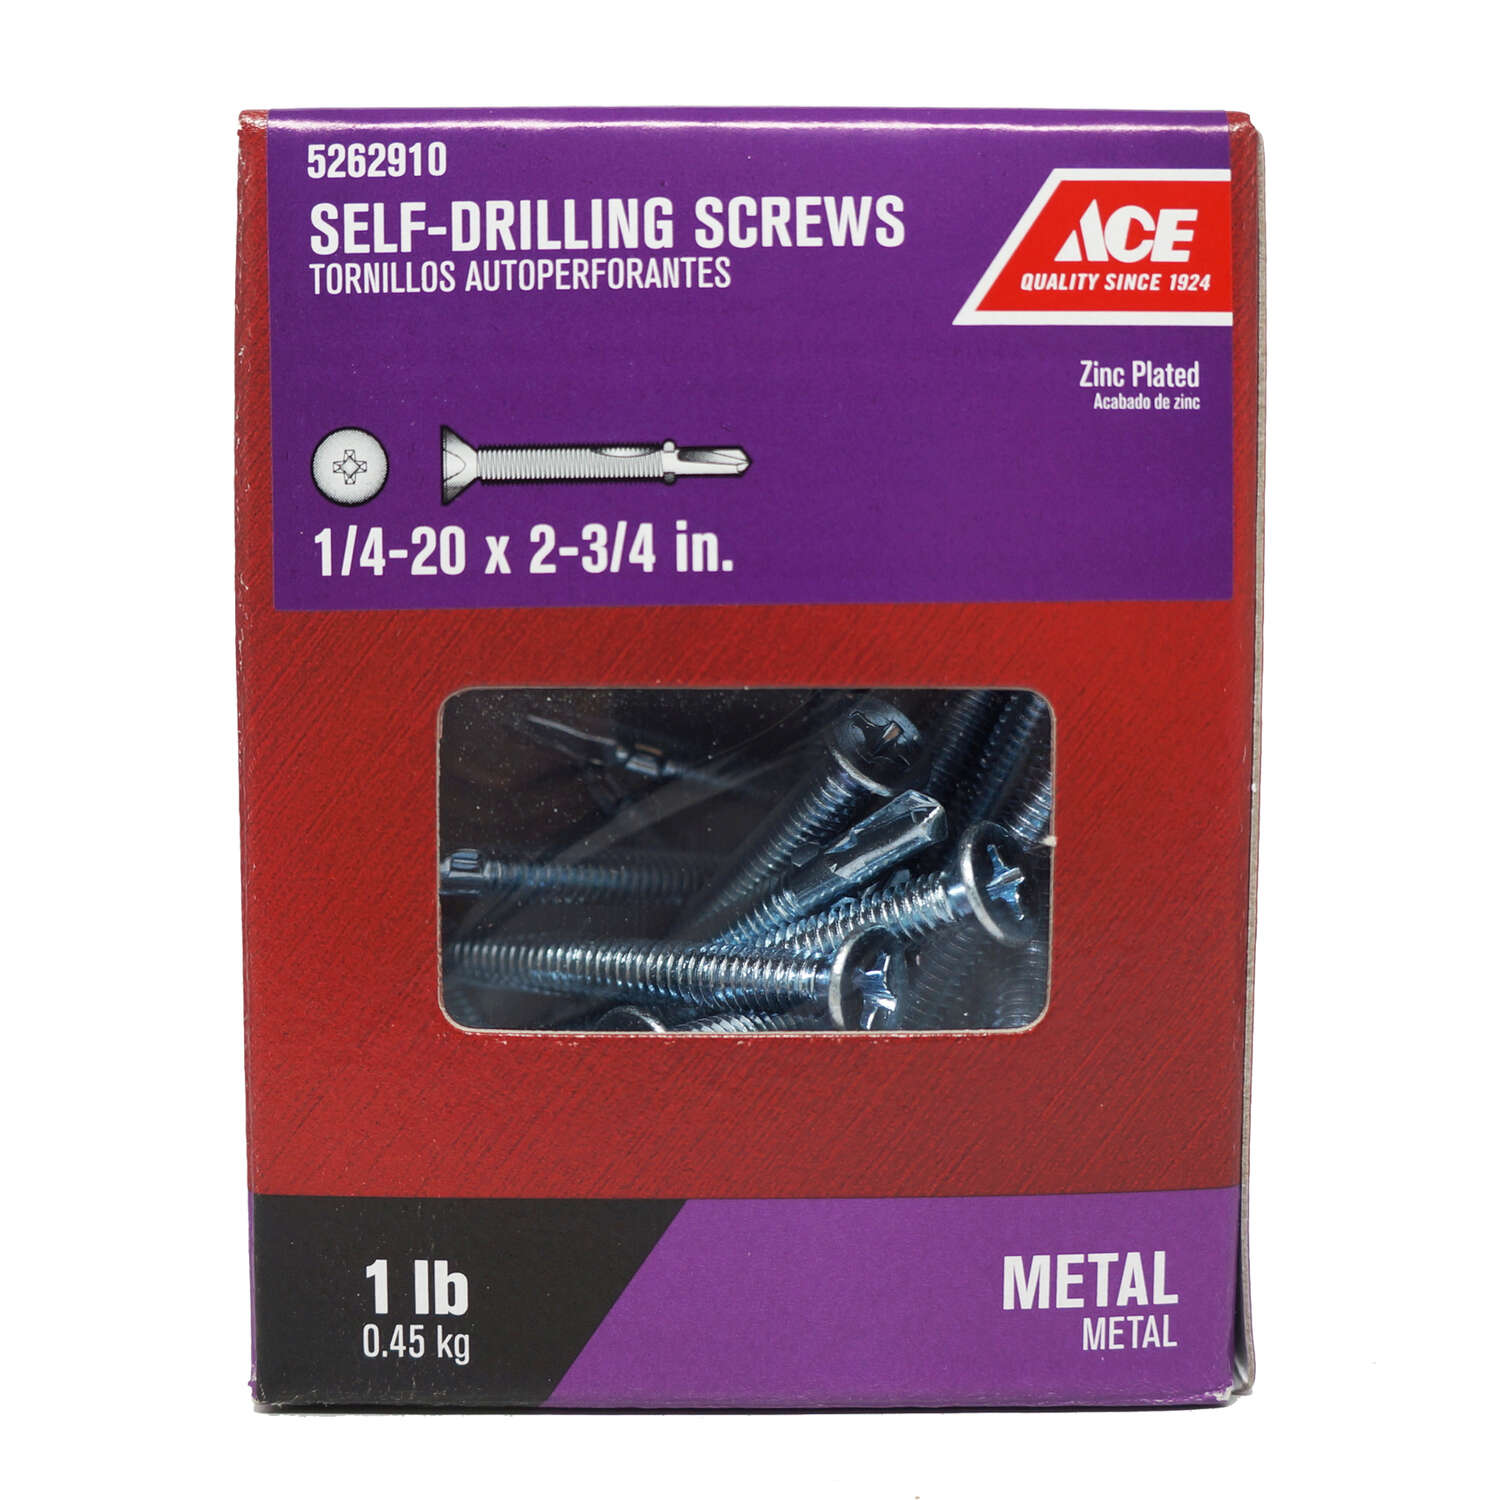 Ace 1/4-20 Sizes x 2-3/4 in. L Phillips Flat Head Zinc-Plated Zinc Self-Drilling Screws w/Wings